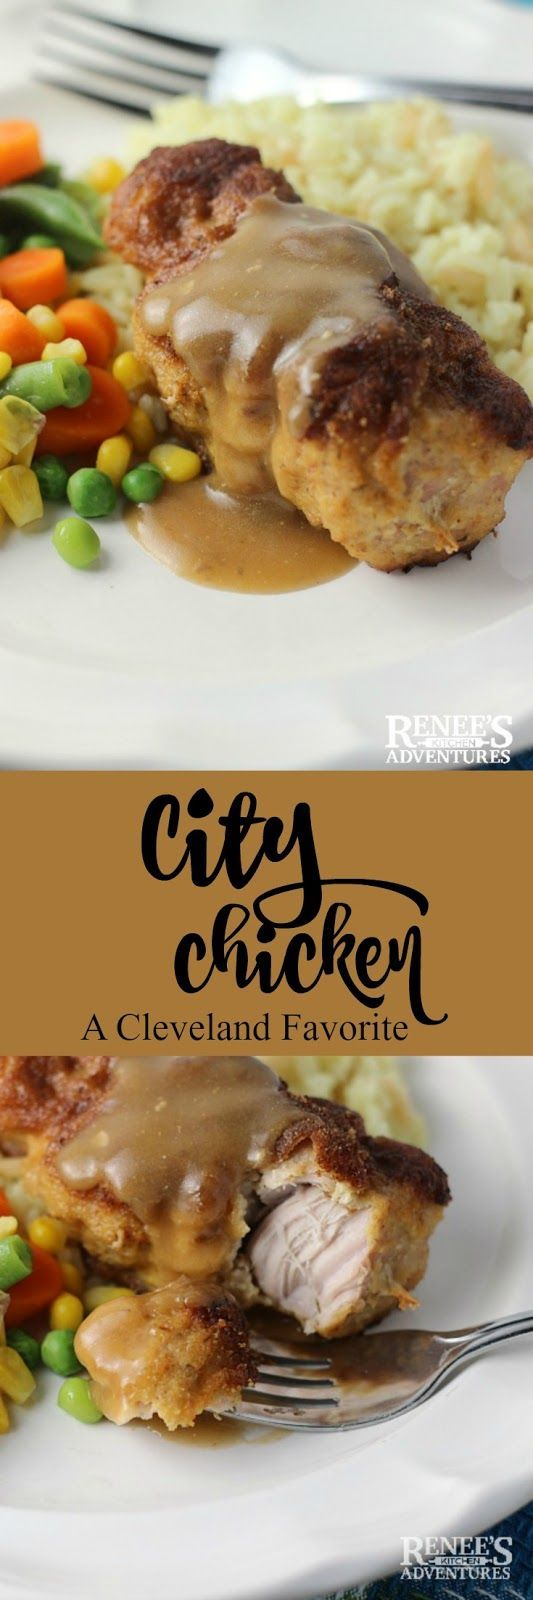 City Chicken   Renee's Kitchen Adventures - easy comfort food of the Midwest made with pork sirloin cubes and baked in the oven for dinner or lunch.